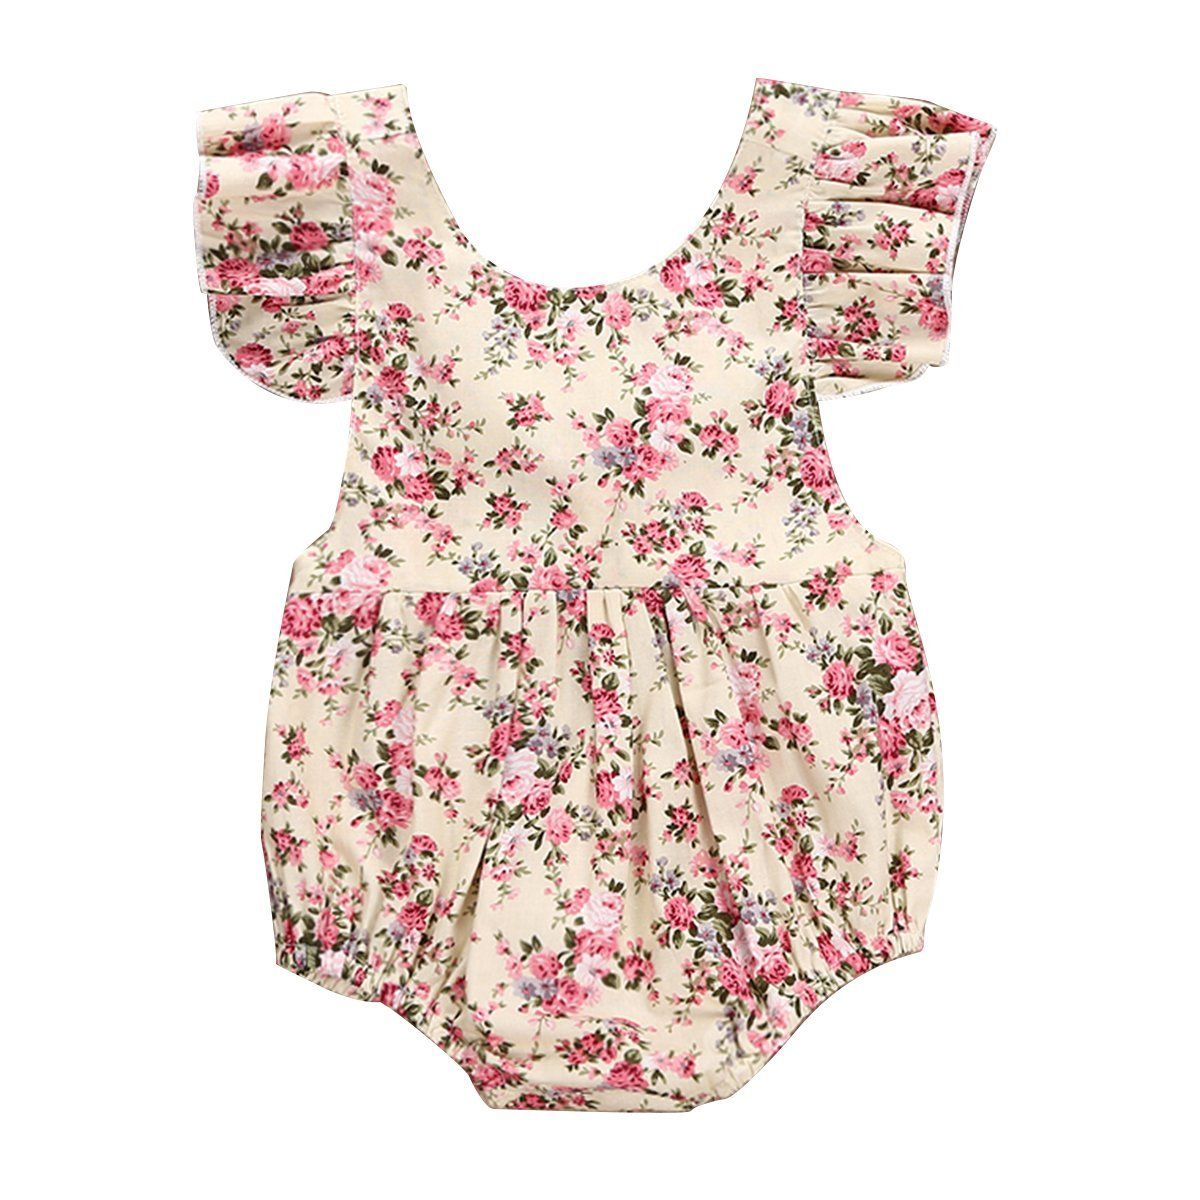 Newborn Baby Girl Fly Sleeve Floral Romper Jumpsuit Playsuit Outfits Clothes